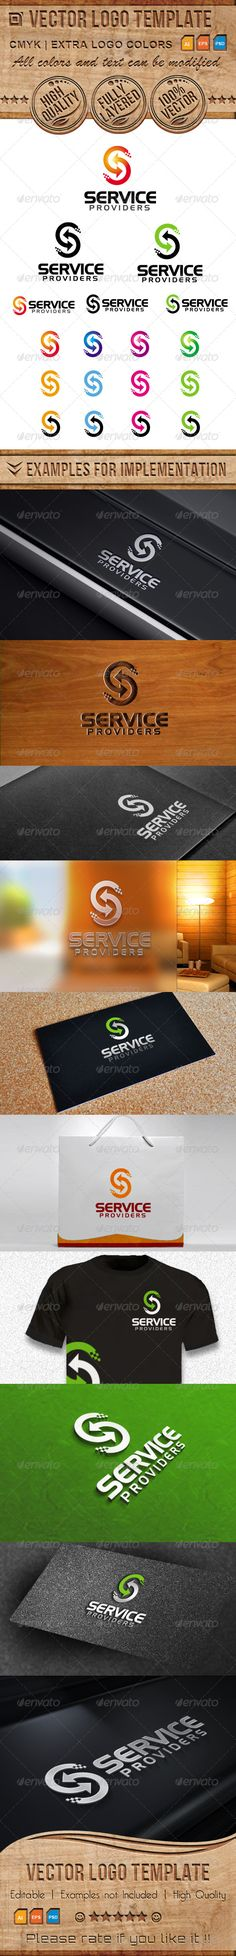 S, Service Vector Logo Template  #GraphicRiver        An excellent Illustrator (AI), Photoshop (PSD), Vector (EPS) professional custom logo template highly suitable for S, Service, circle, app, software, community, groups.  FEATURES   The Logo Is 100% Vector  100% Customizable  Fully Layered Logo Template  CMYK   Gradient version  High Quality  AI, EPS, PSD files  All colors and text can be modified  Font Details  1. SERVICE : Hanzel-normal(font) –  .ufonts /fonts/hanzel-normal.html…